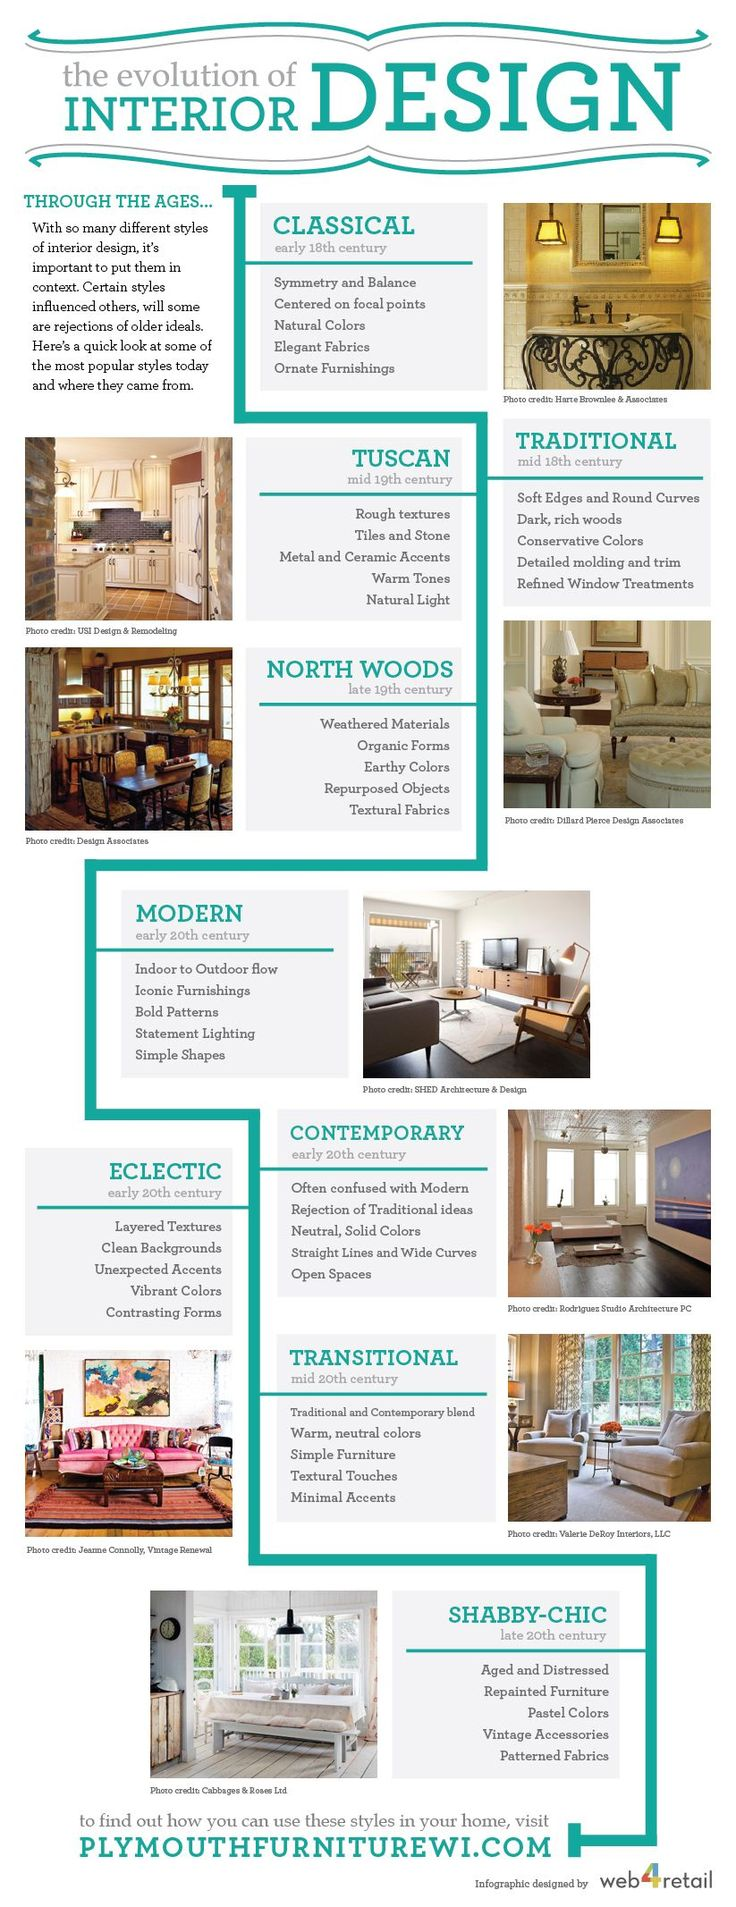 Know your design styles! Design Styles Infographic